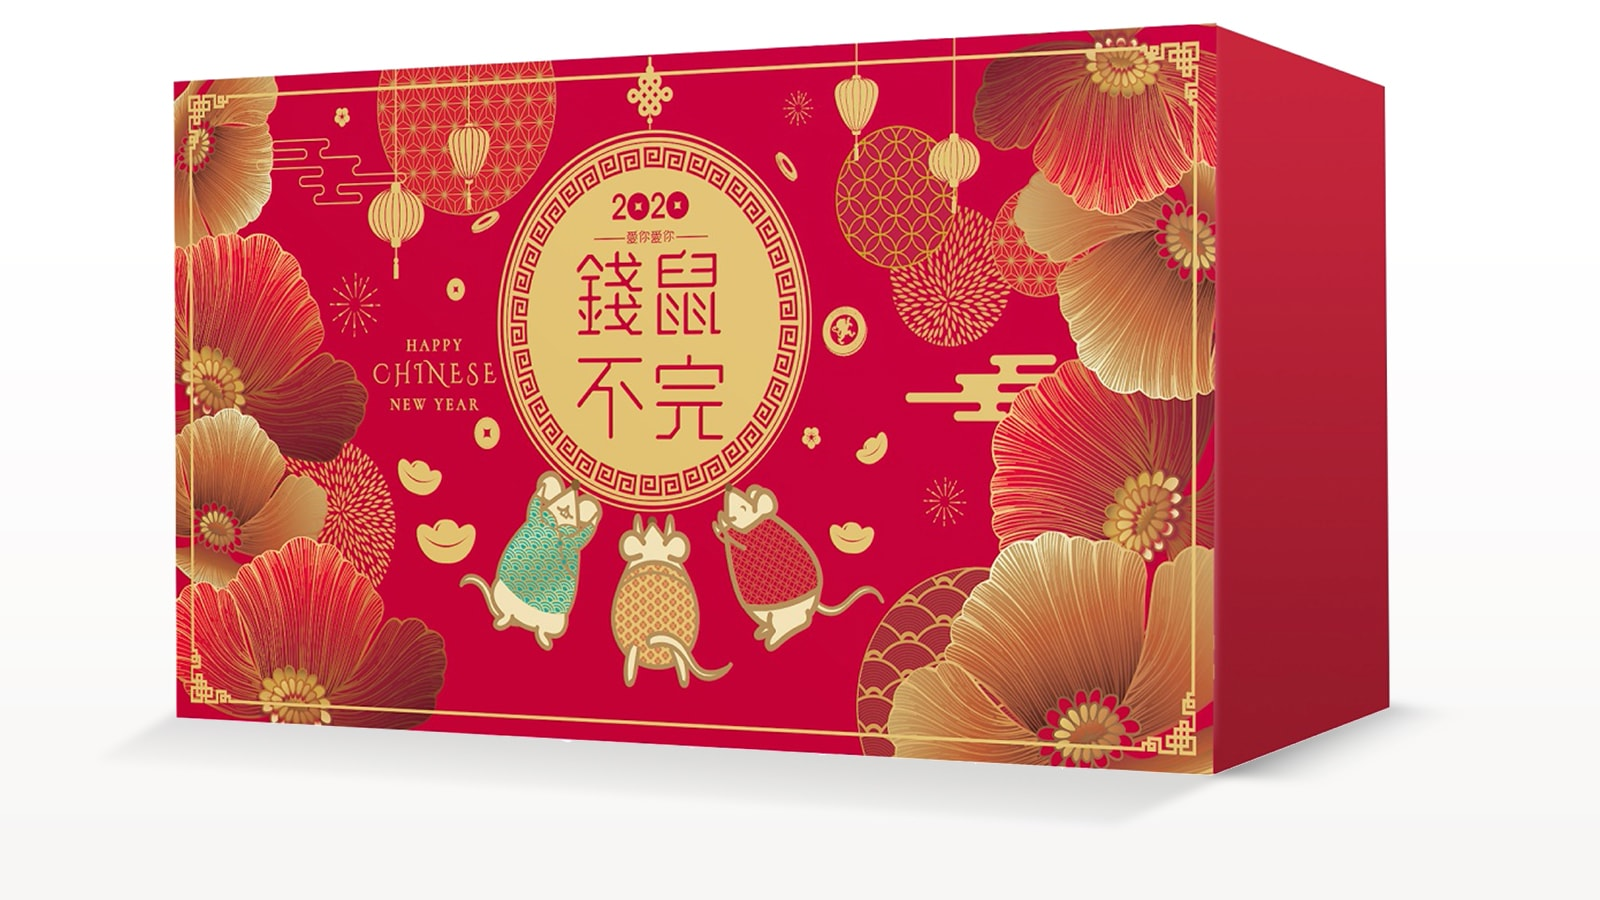 Example of Digital Printing Application - 2020 Ginseng chicken essence